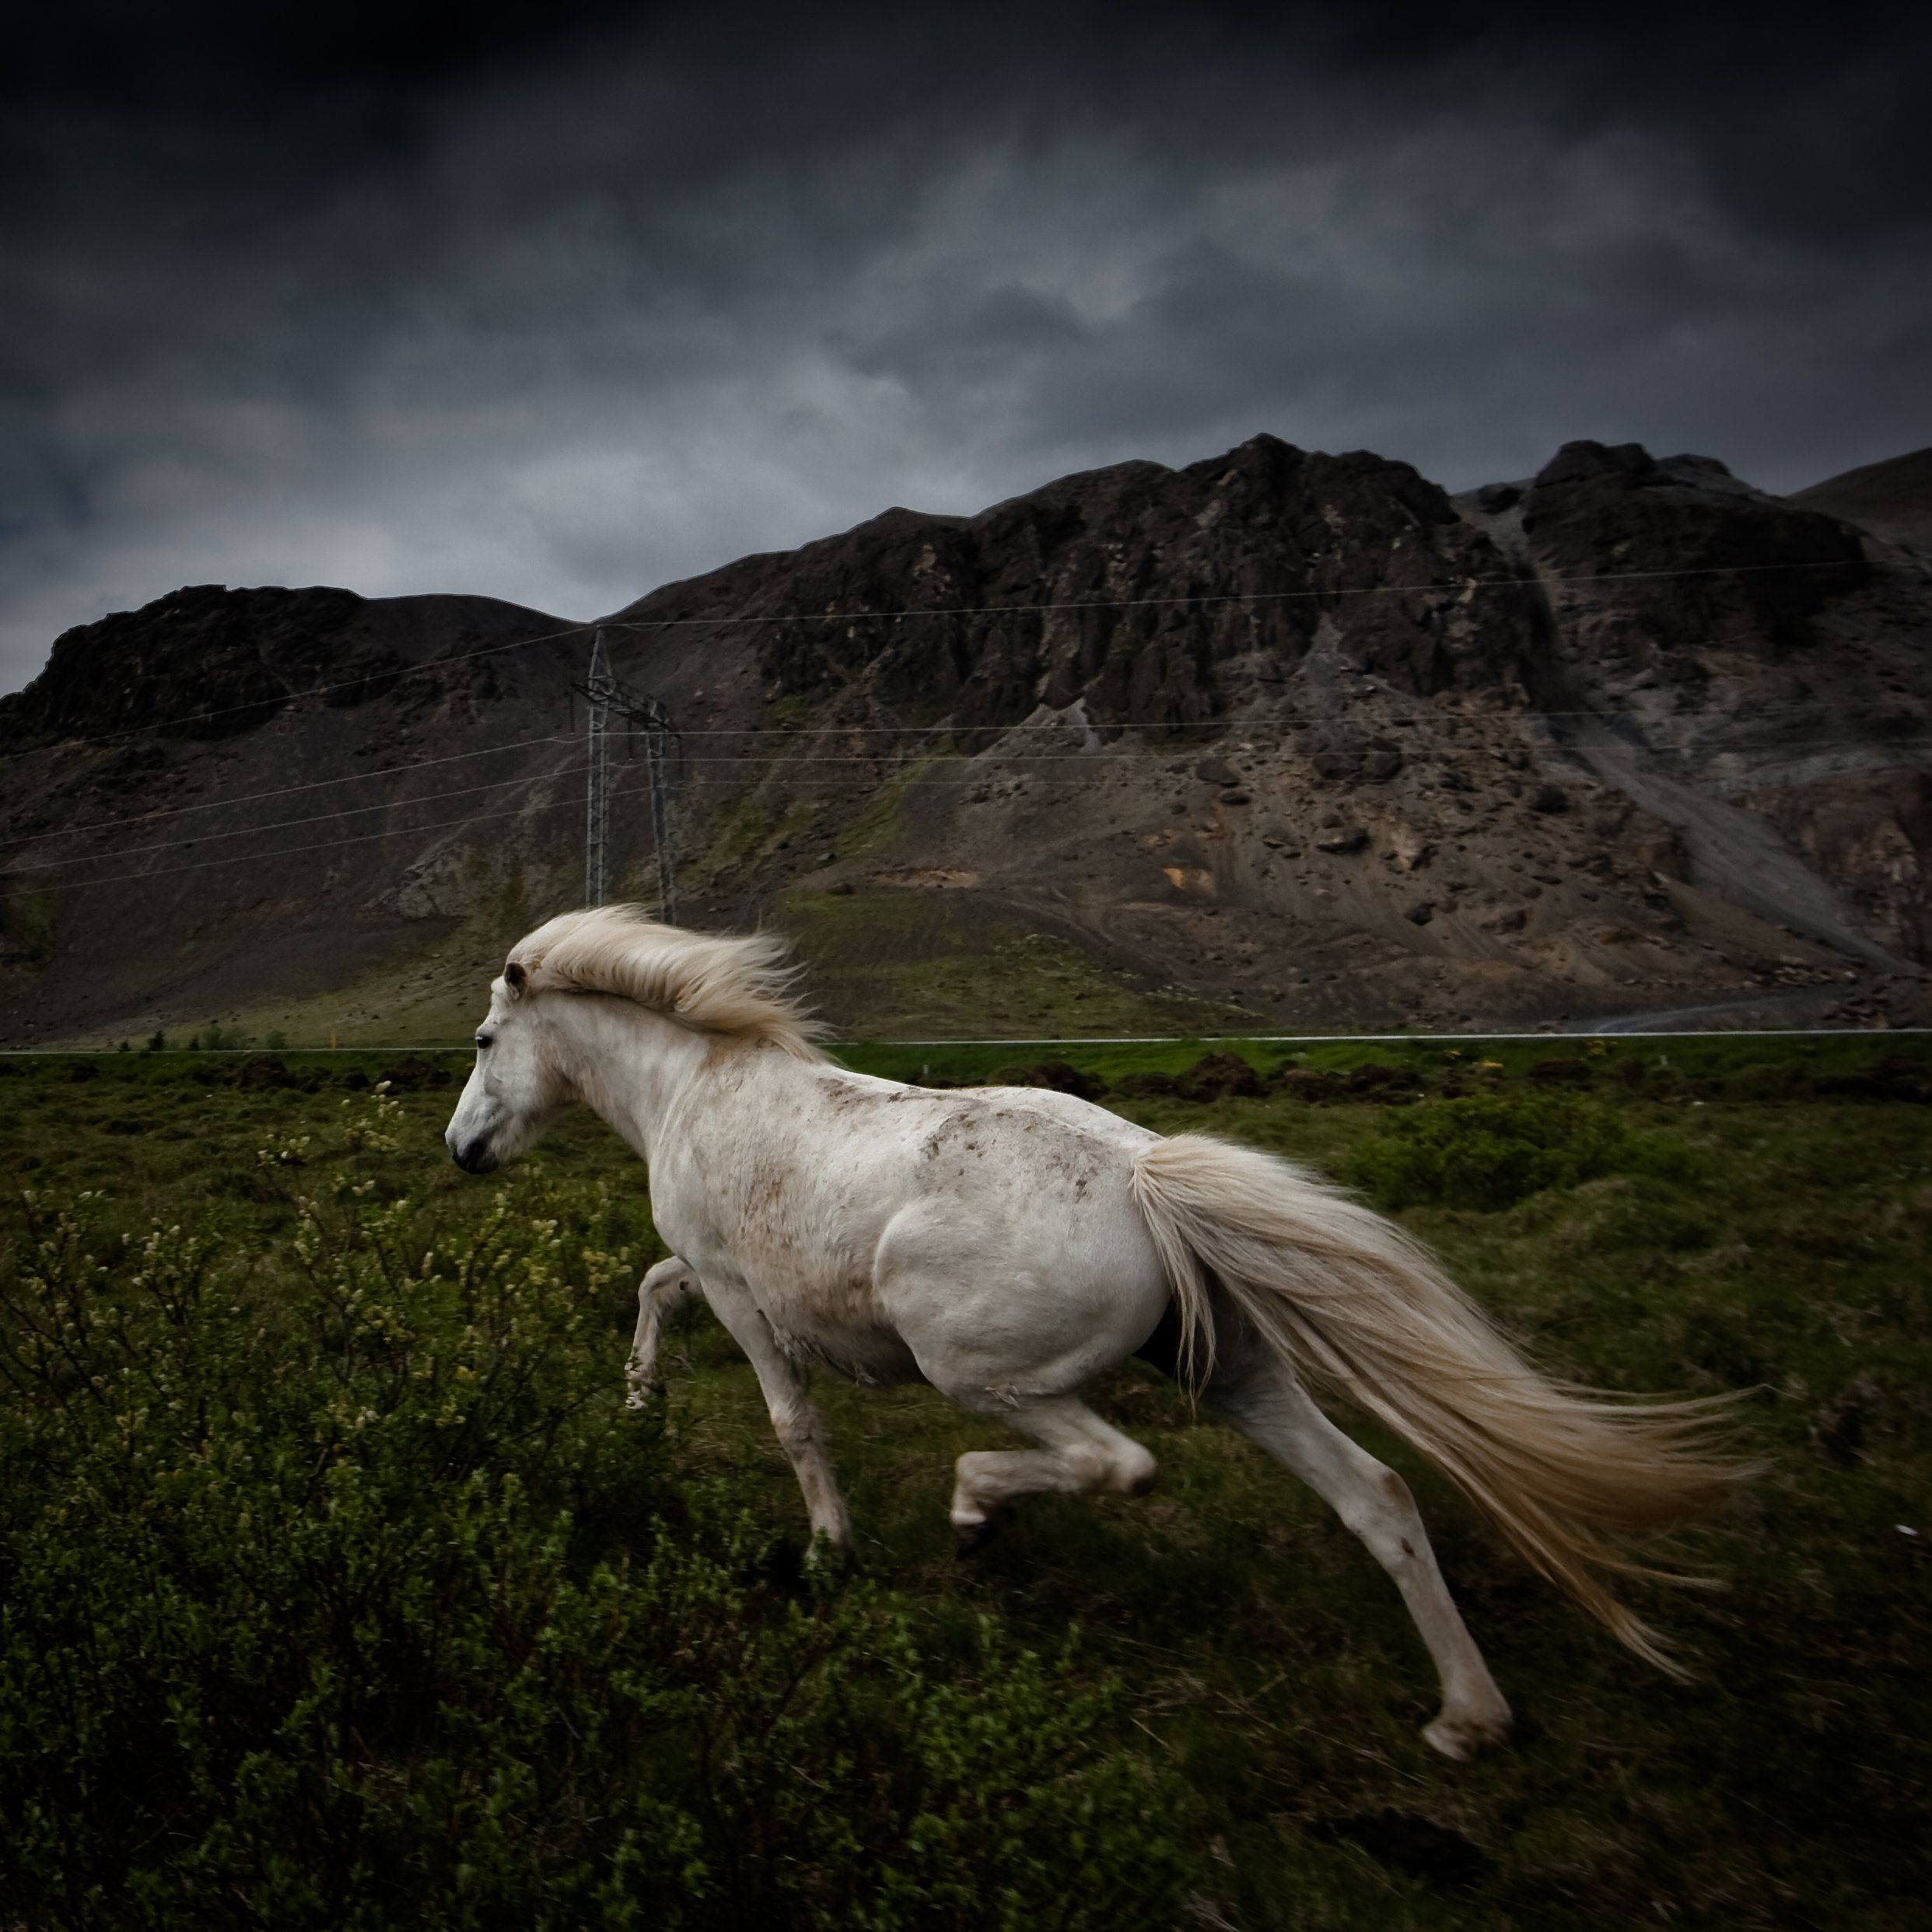 Wonderful Wallpaper Horse National Geographic - a8ff249e7b0f4e8775f3a11b5e2dcf9e  Best Photo Reference_355749.jpg